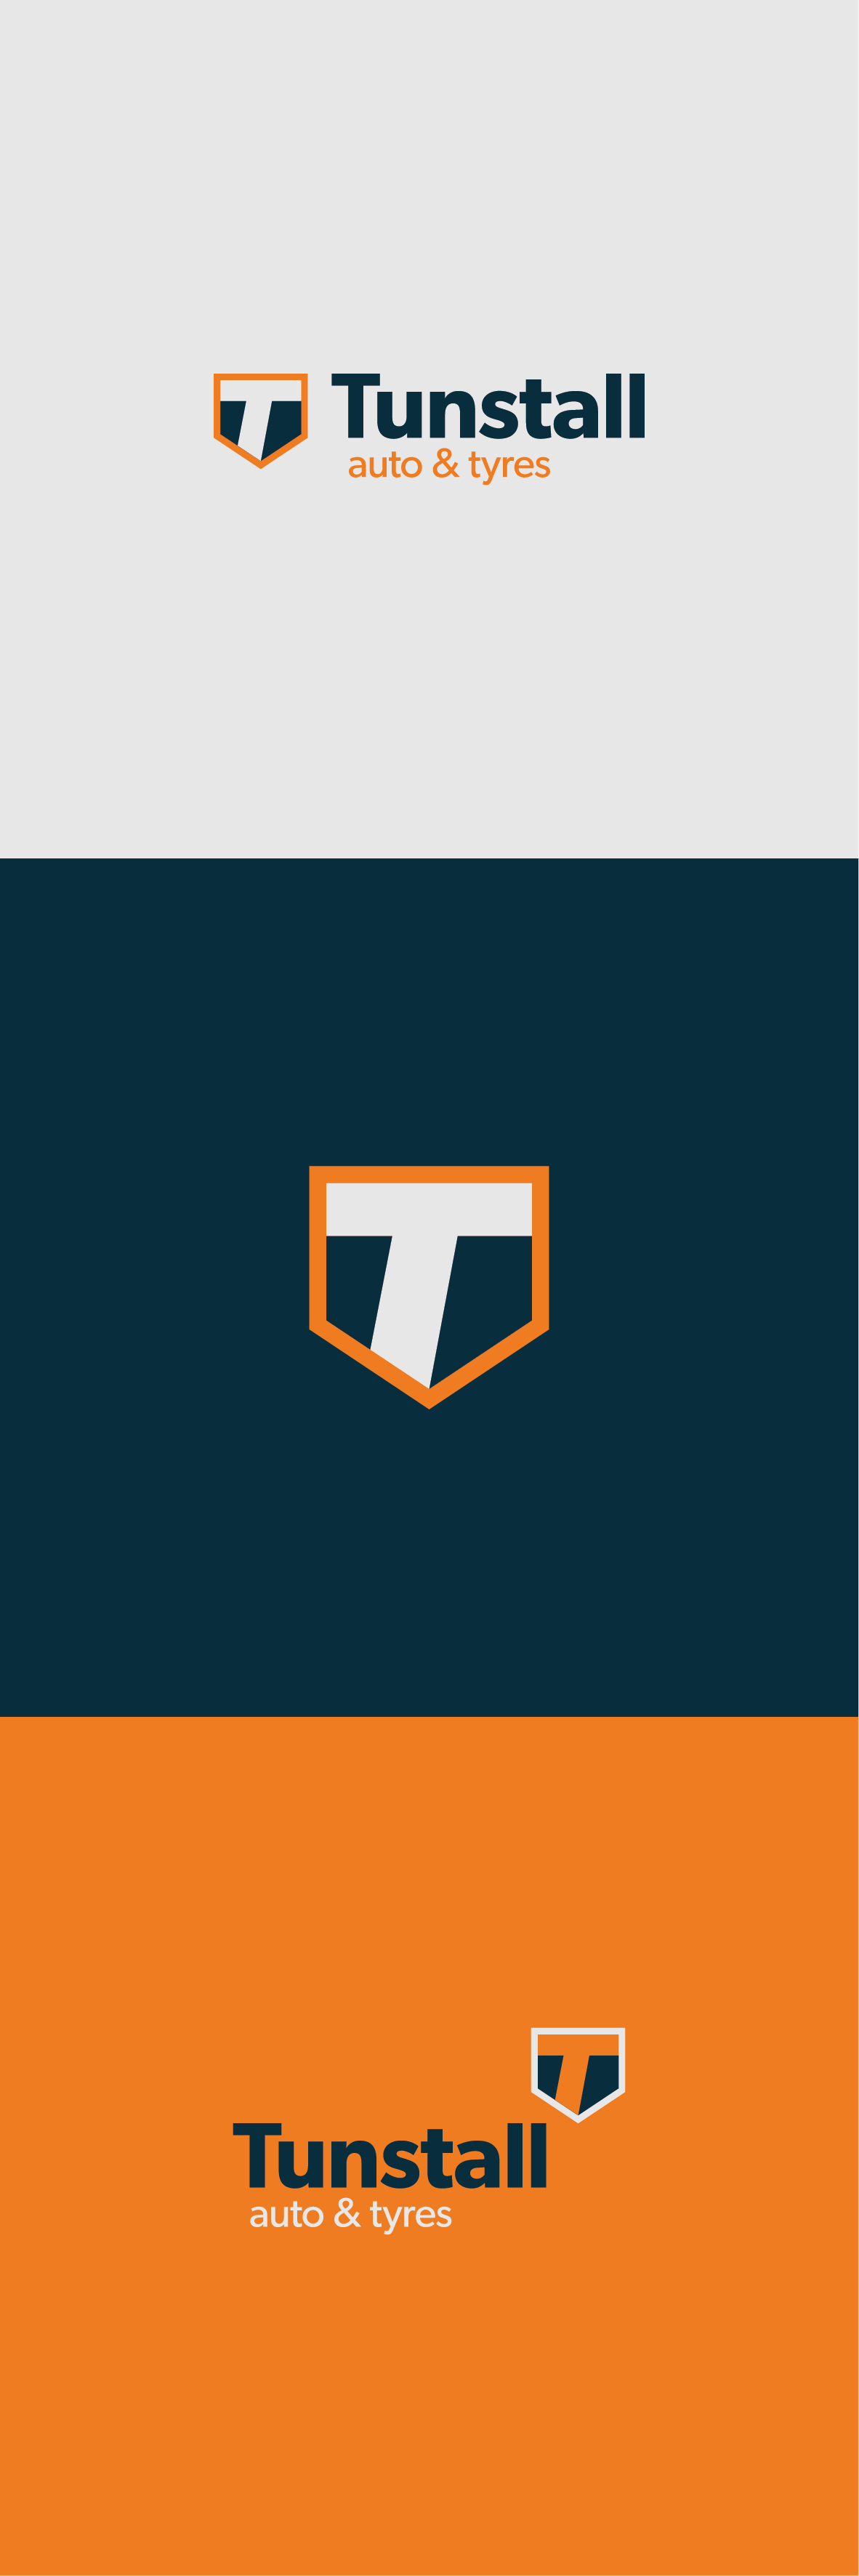 Tunstall Auto & Tyres_Logo-01.png